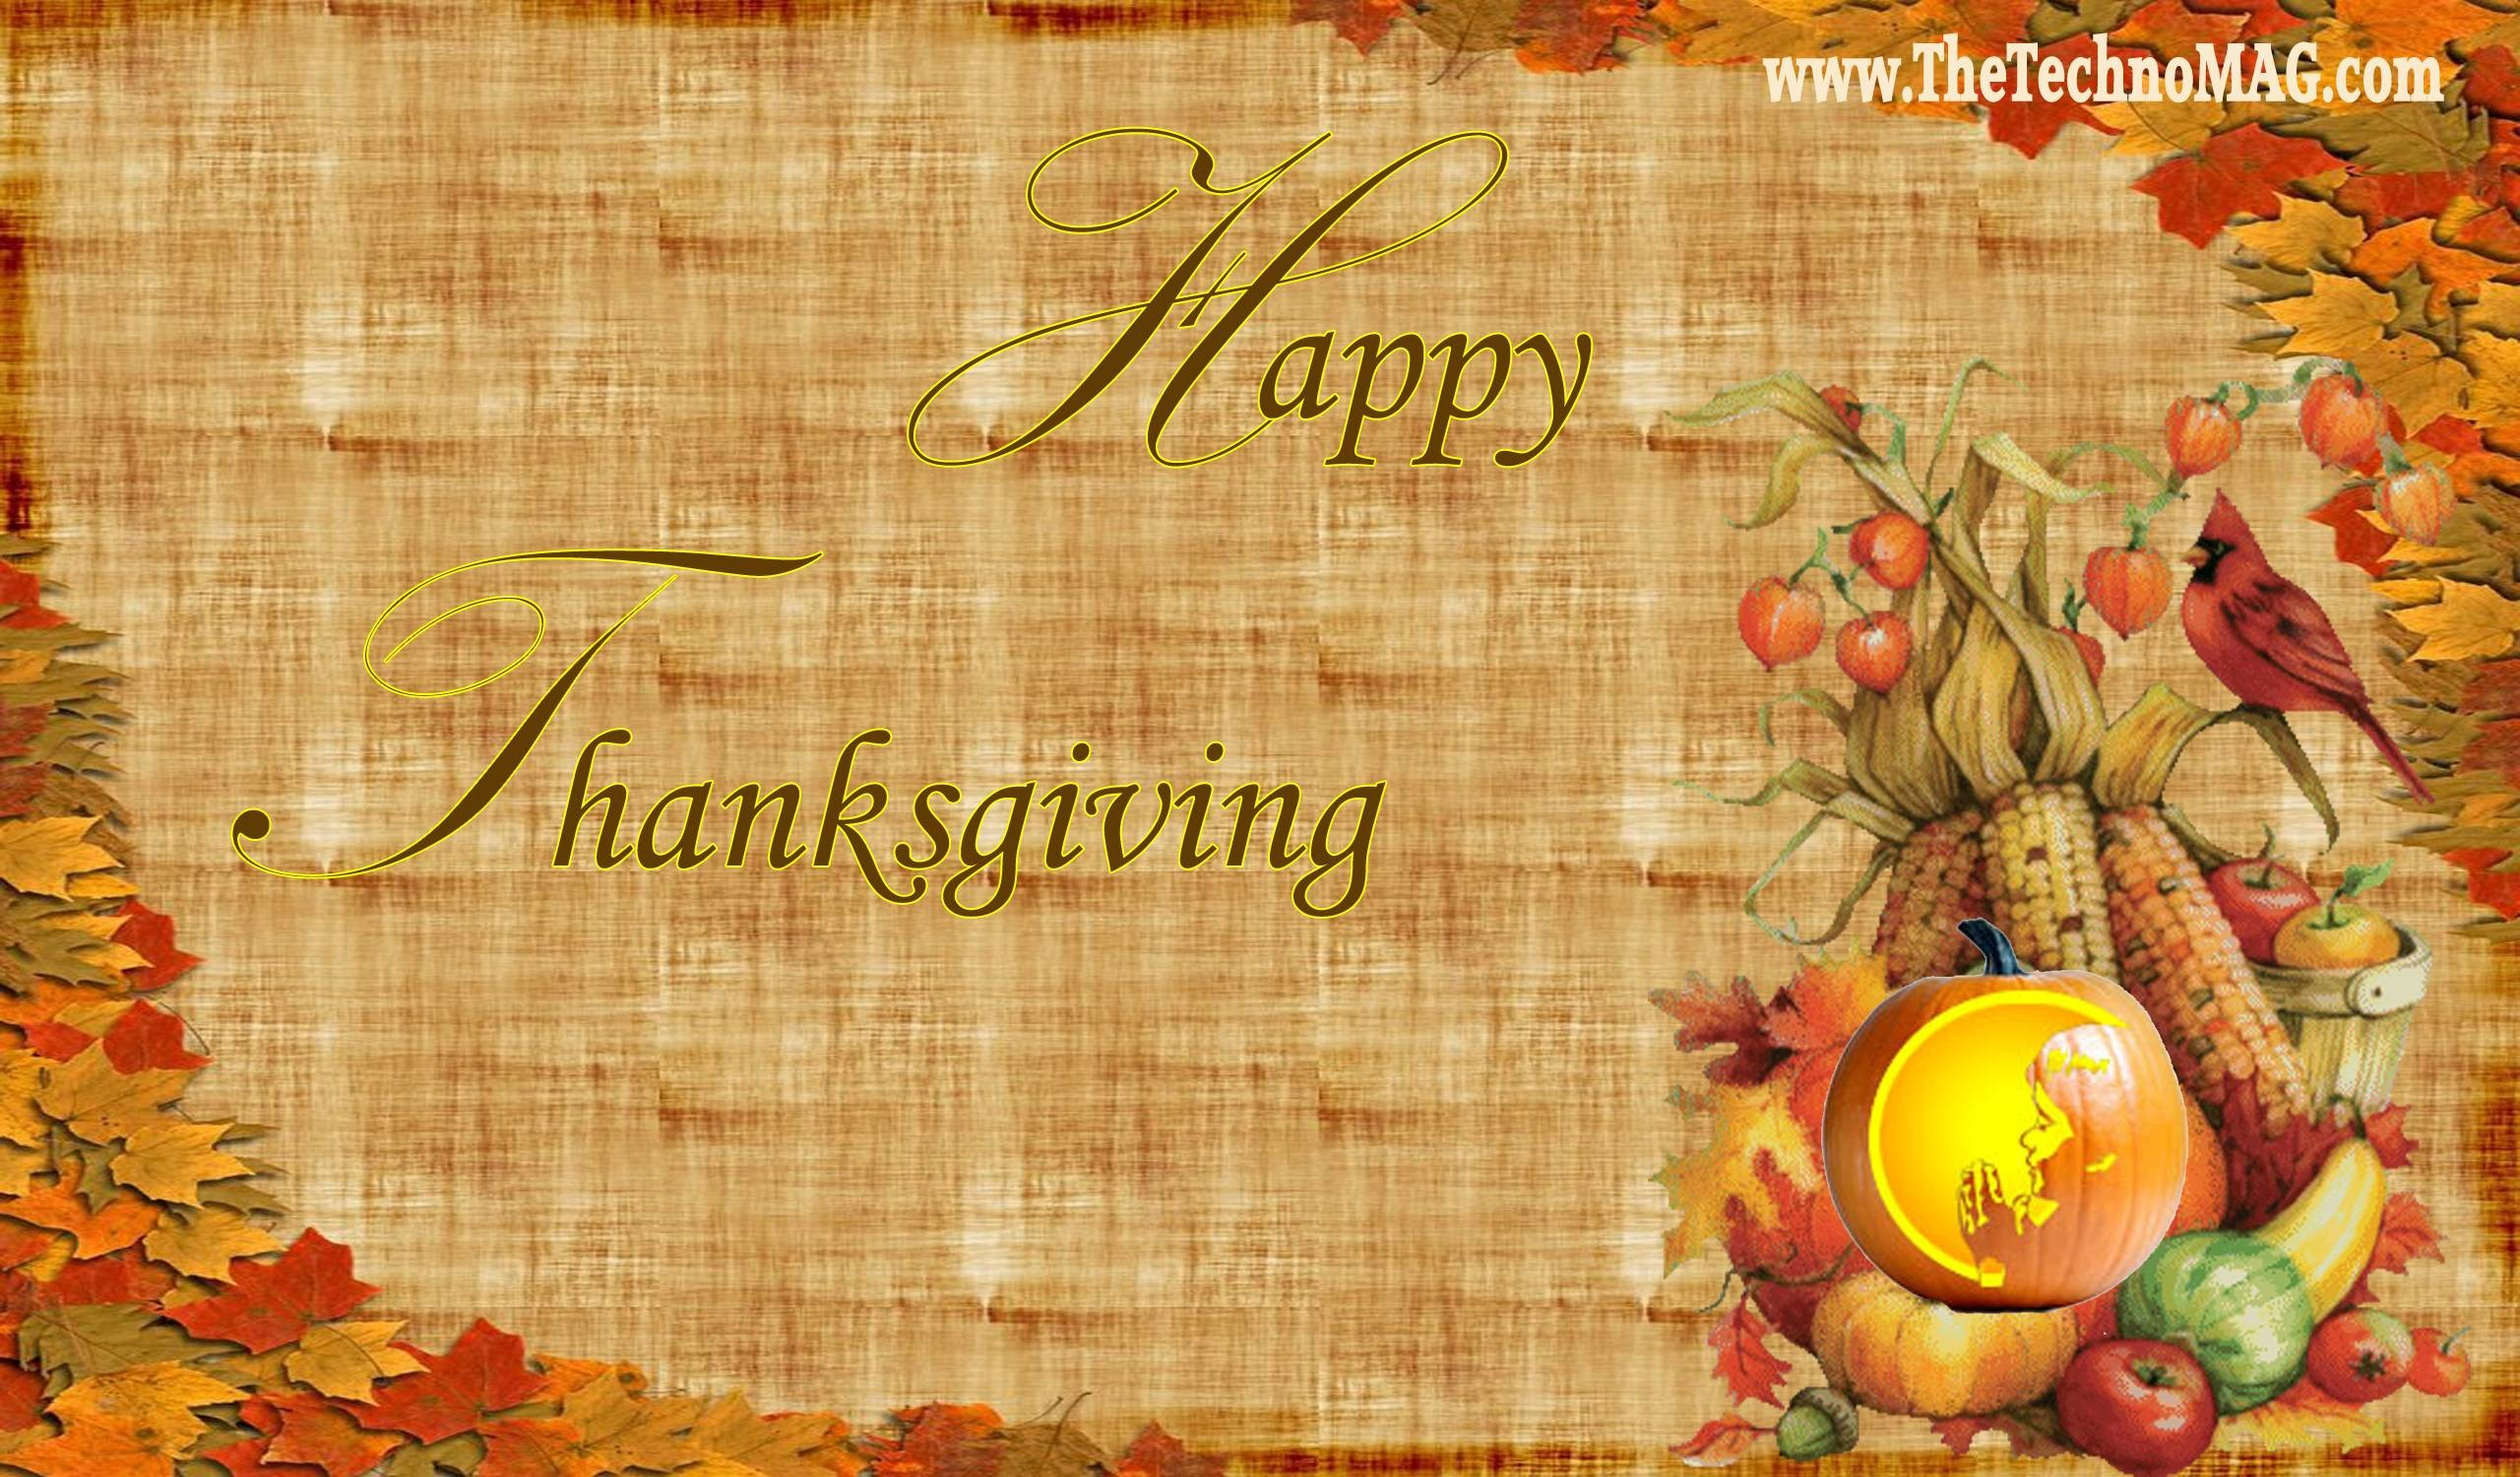 Happy Thanksgiving Wallpaper Backgrounds #8781526